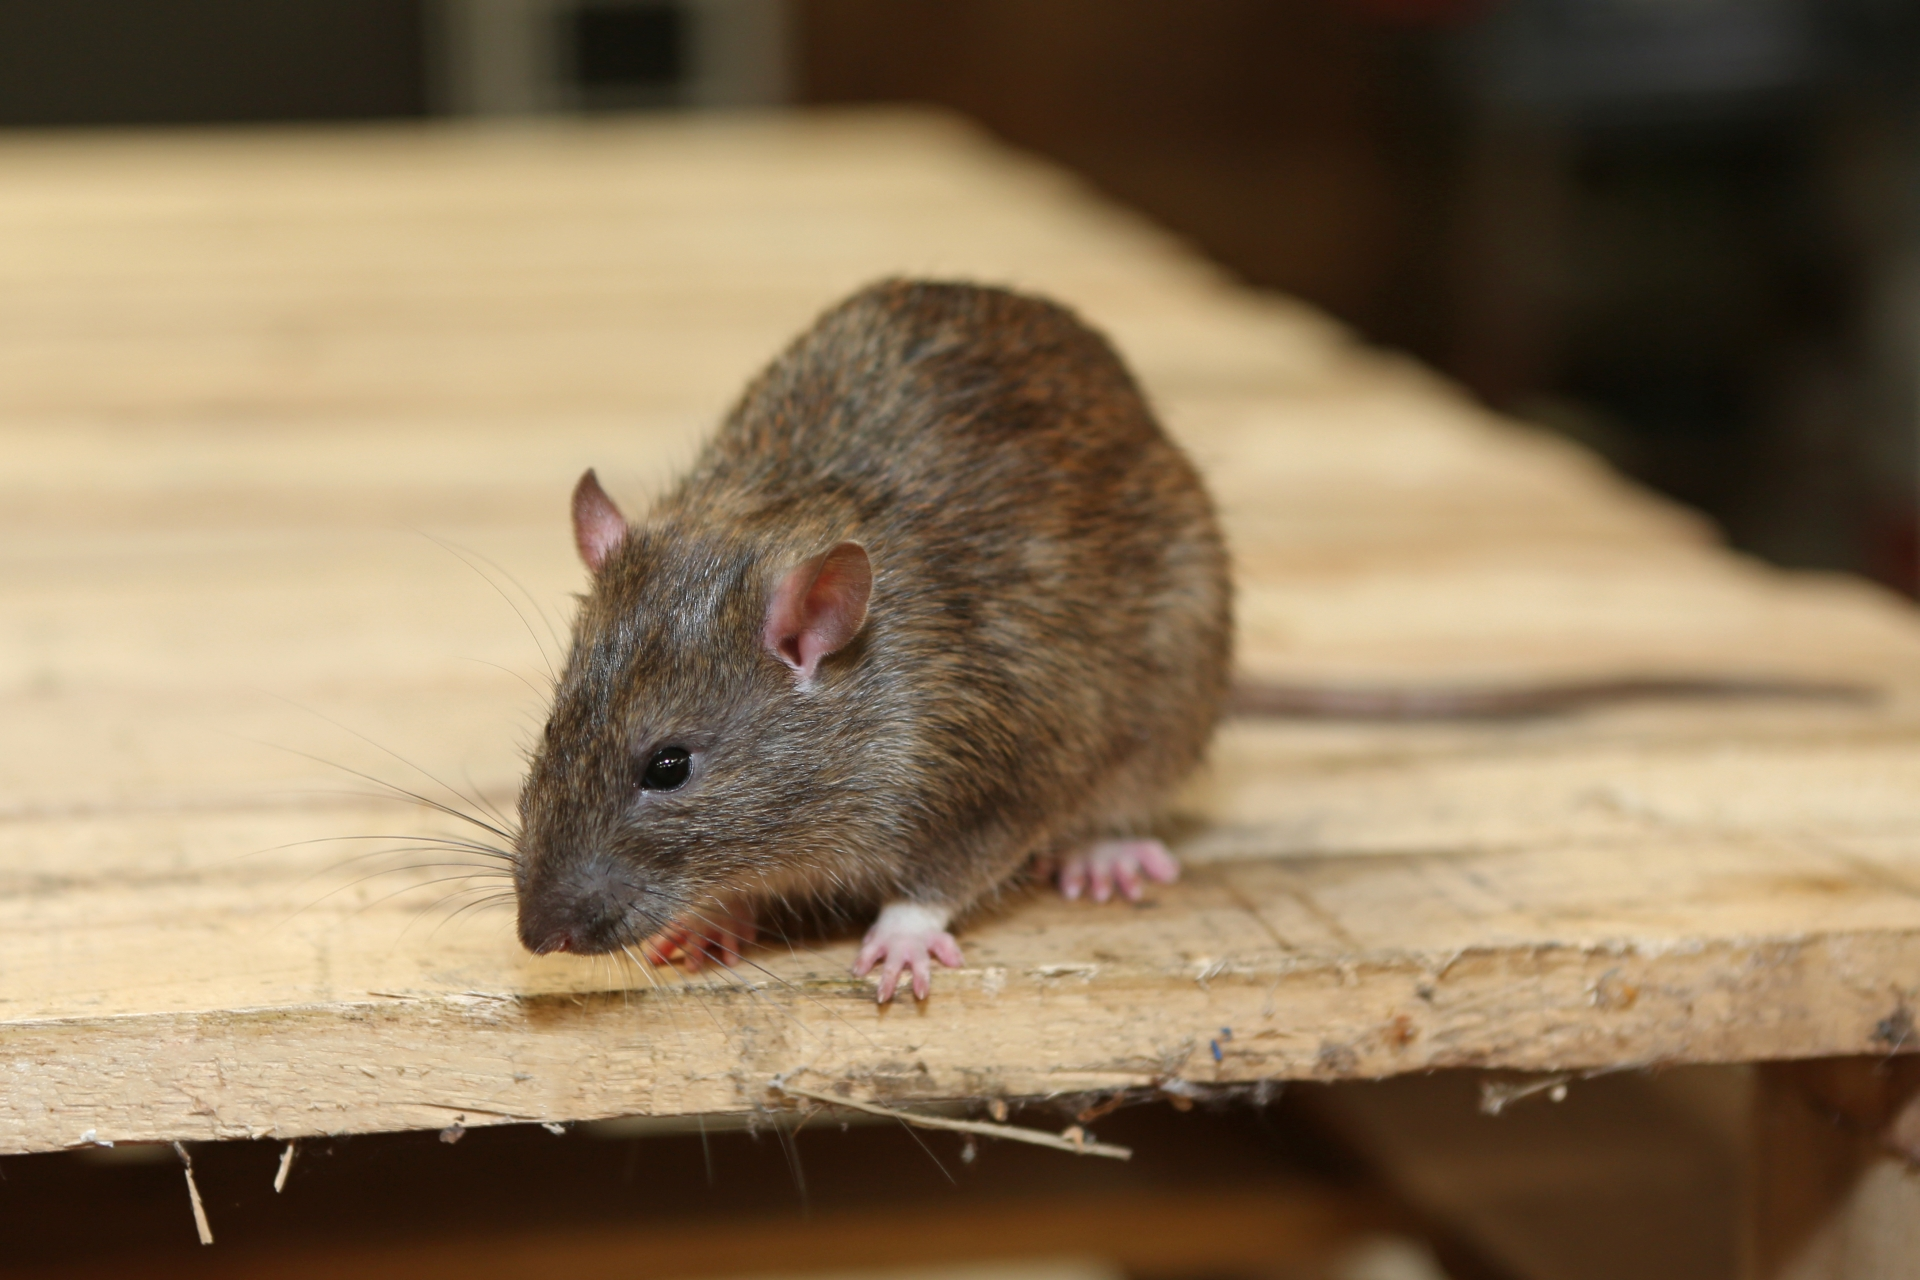 Rat Infestation, Pest Control in Wealdstone, Harrow Weald, HA3. Call Now 020 8166 9746